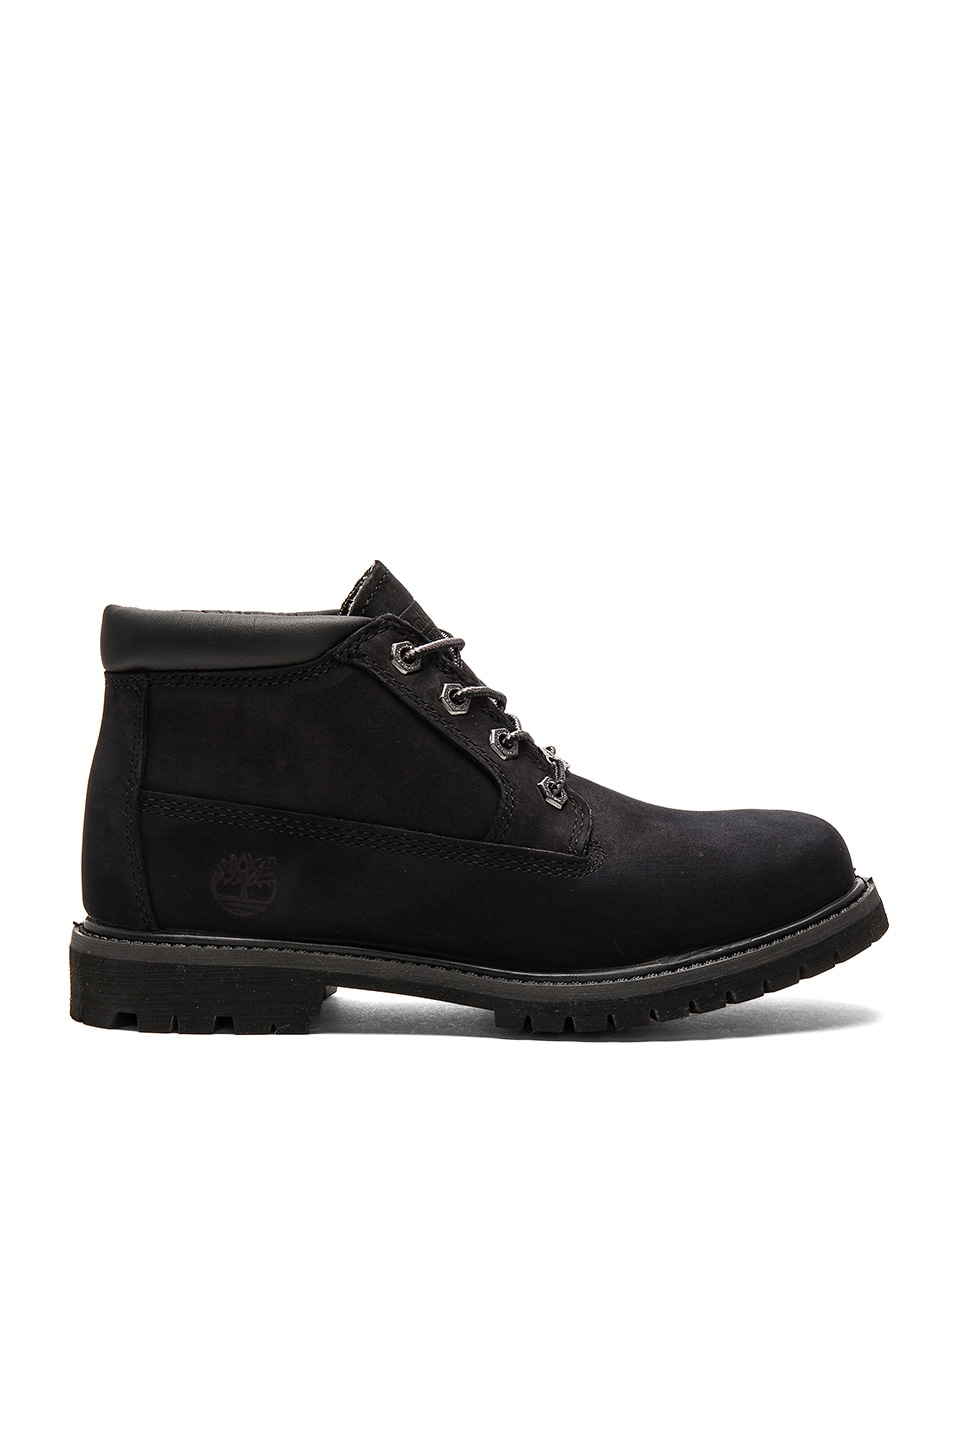 Timberland Nellie Boot in Black Nubuck